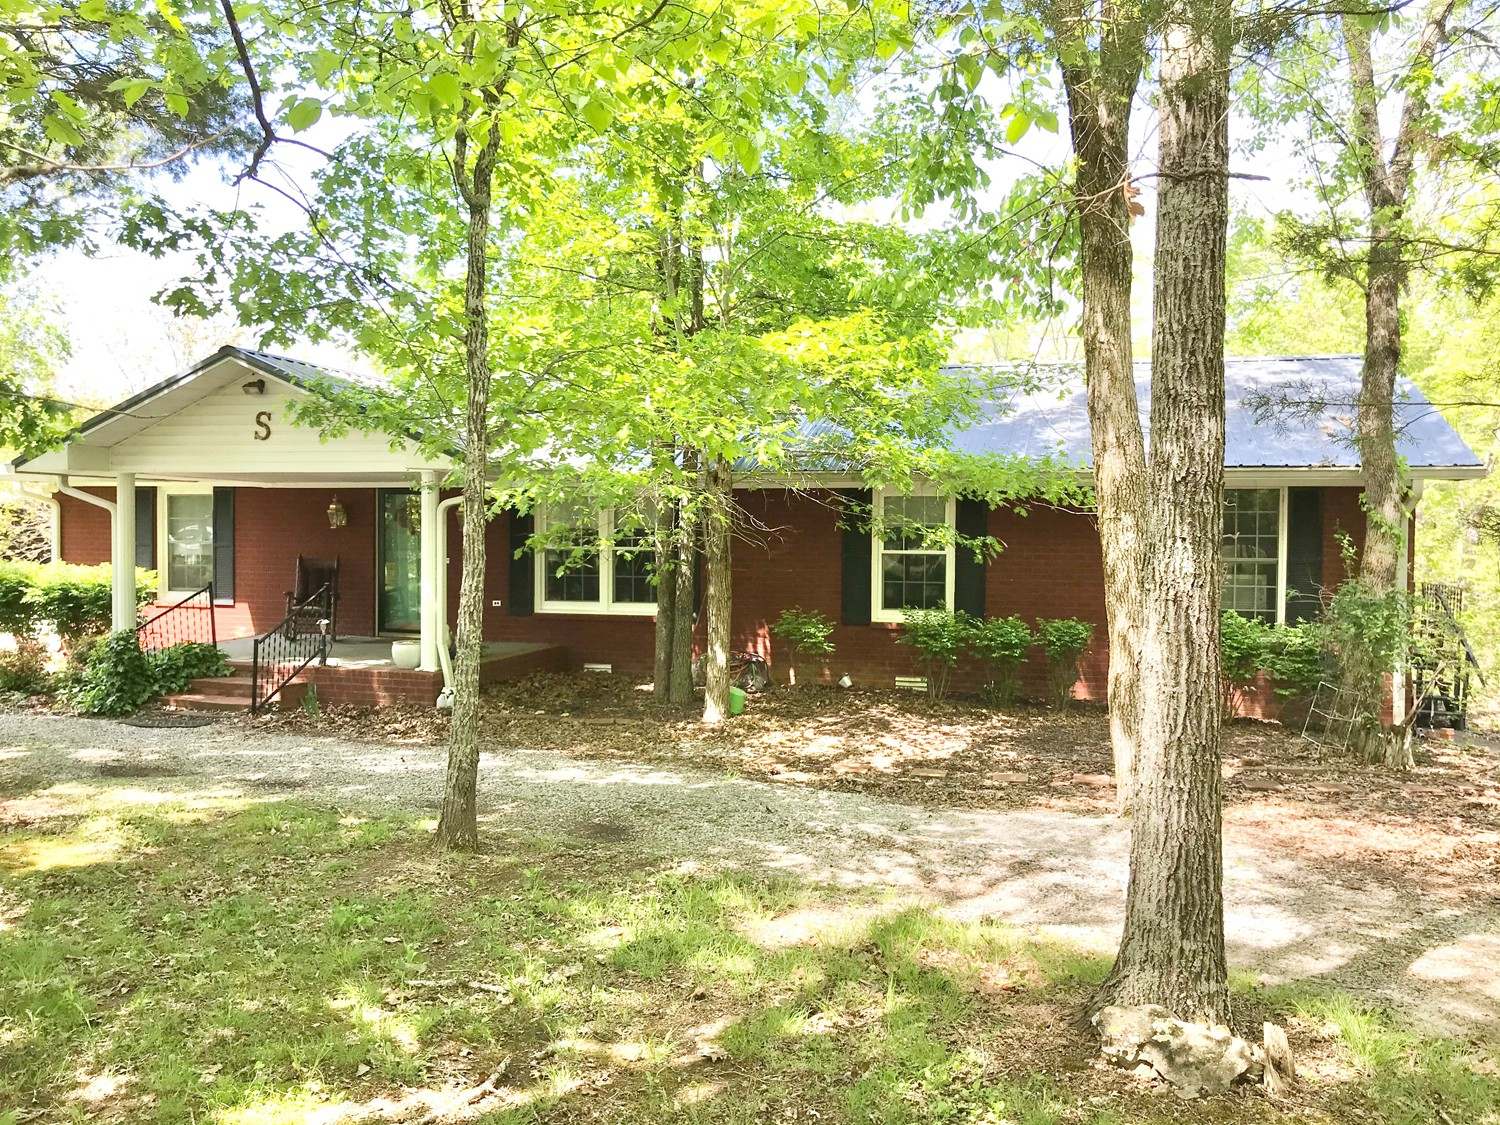 441 Scruggs Hollow Rd Property Photo - Rockvale, TN real estate listing